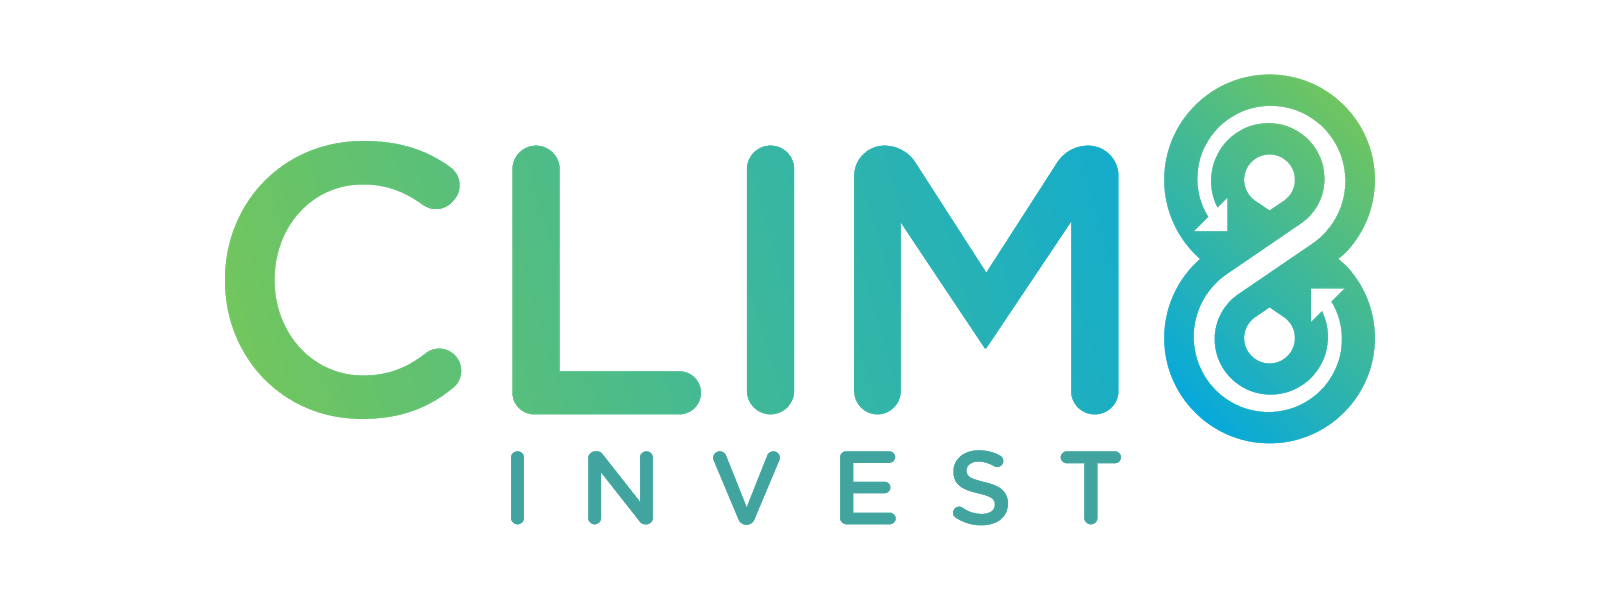 Clim8 Impact Investment App Launches as Sustainable Funds Outperform the Market